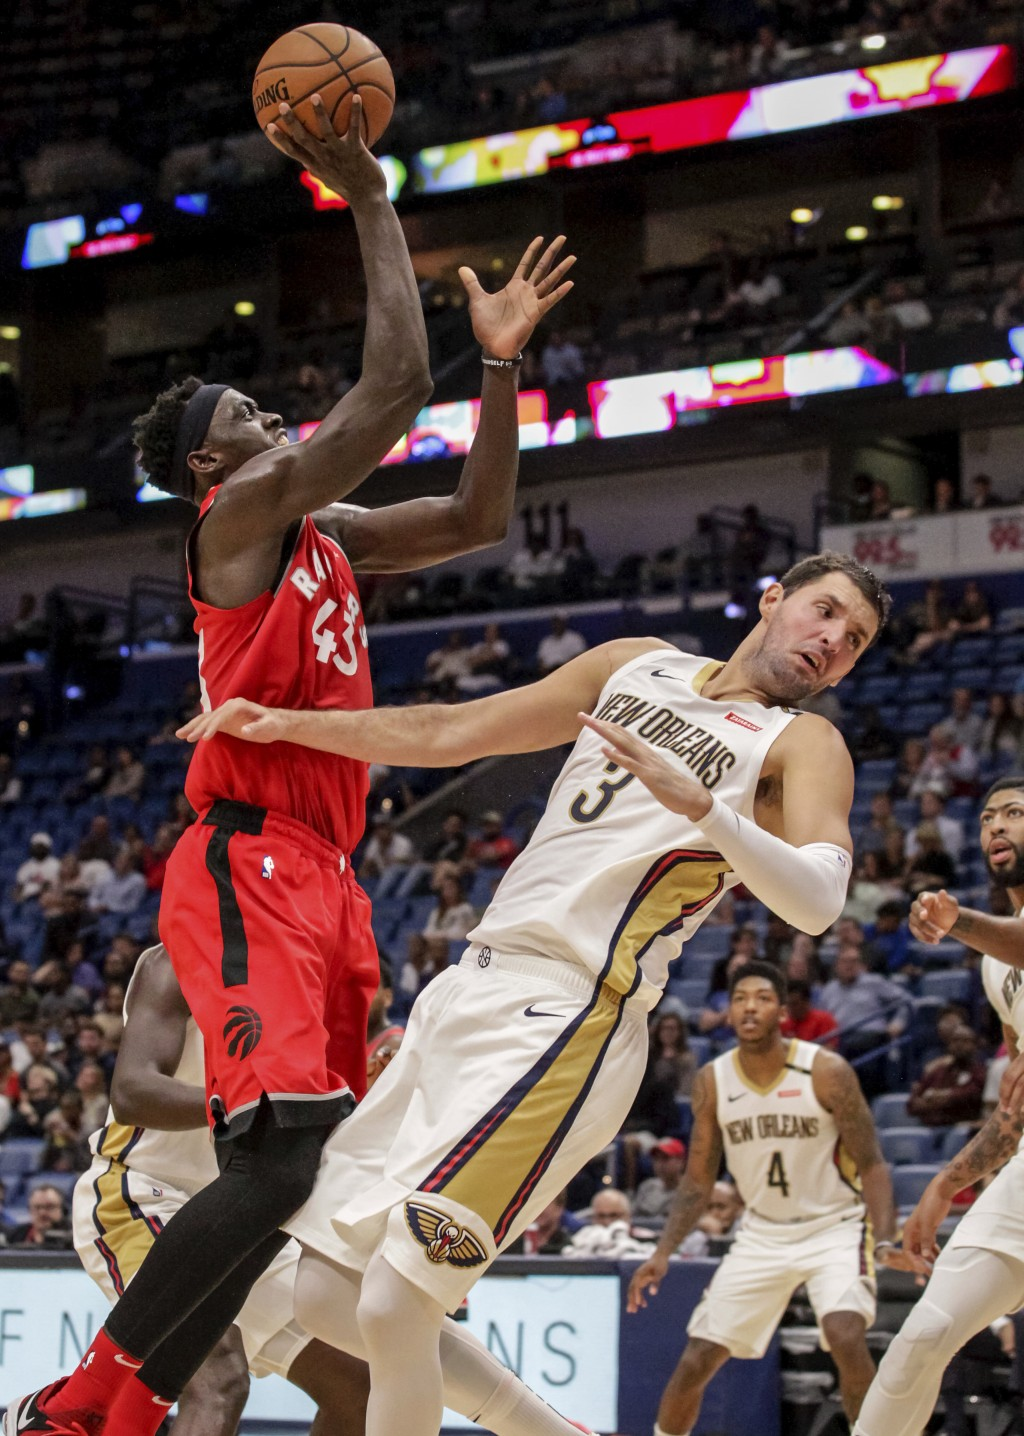 New Orleans Pelicans forward Nikola Mirotic (3) is called for blocking on a shot by Toronto Raptors forward Pascal Siakam (43) during the first half o